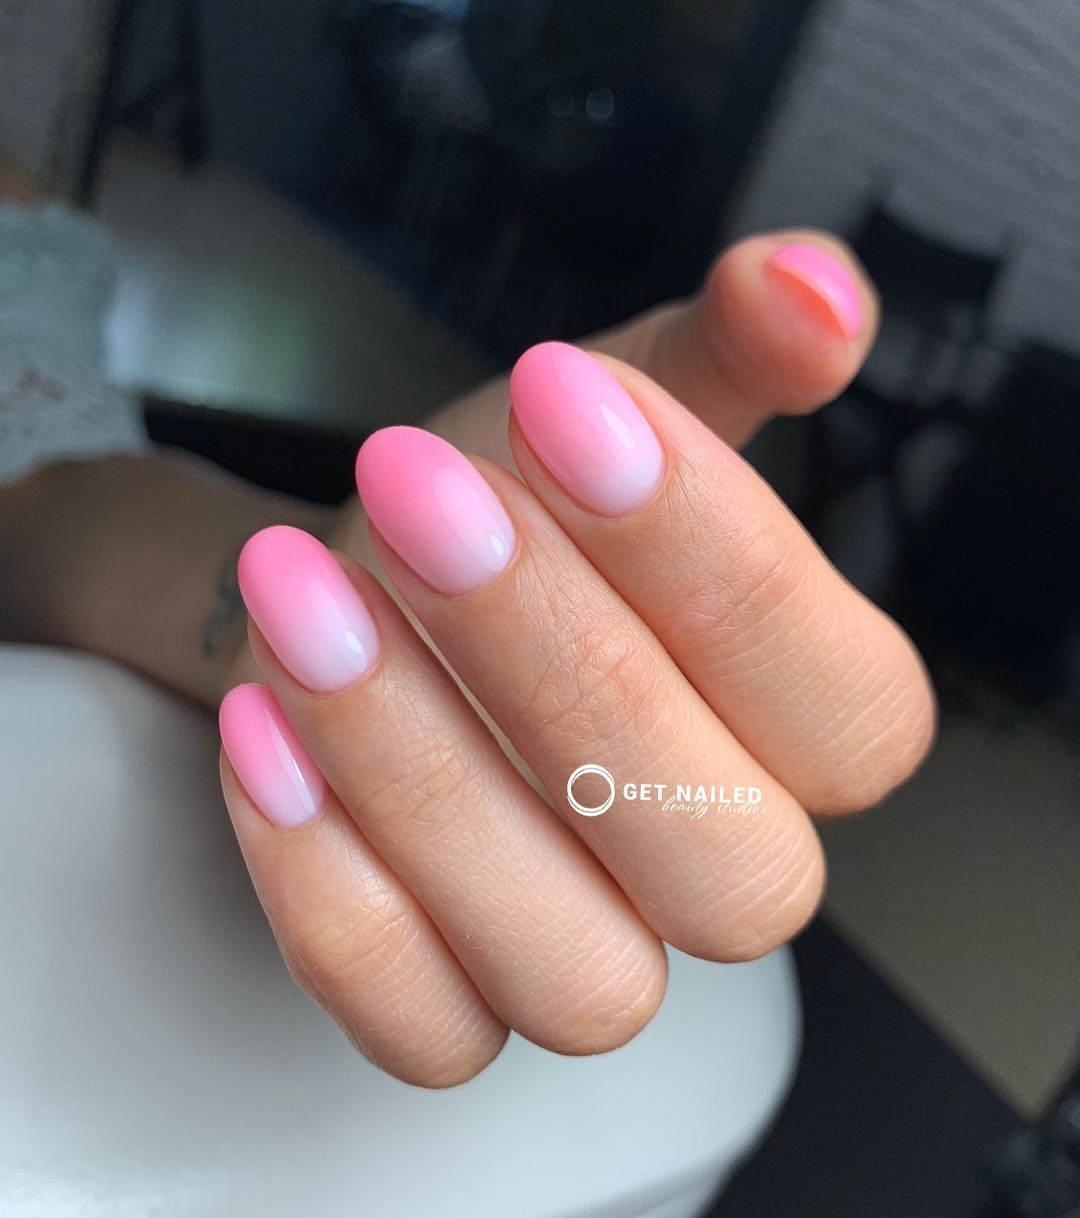 Gentle pink Nails done by KarinaYou can book your appointment on getnailed.co, through DM, WhatsApp +34 680 576 151 or simply by leaving a comment ..luxiogel